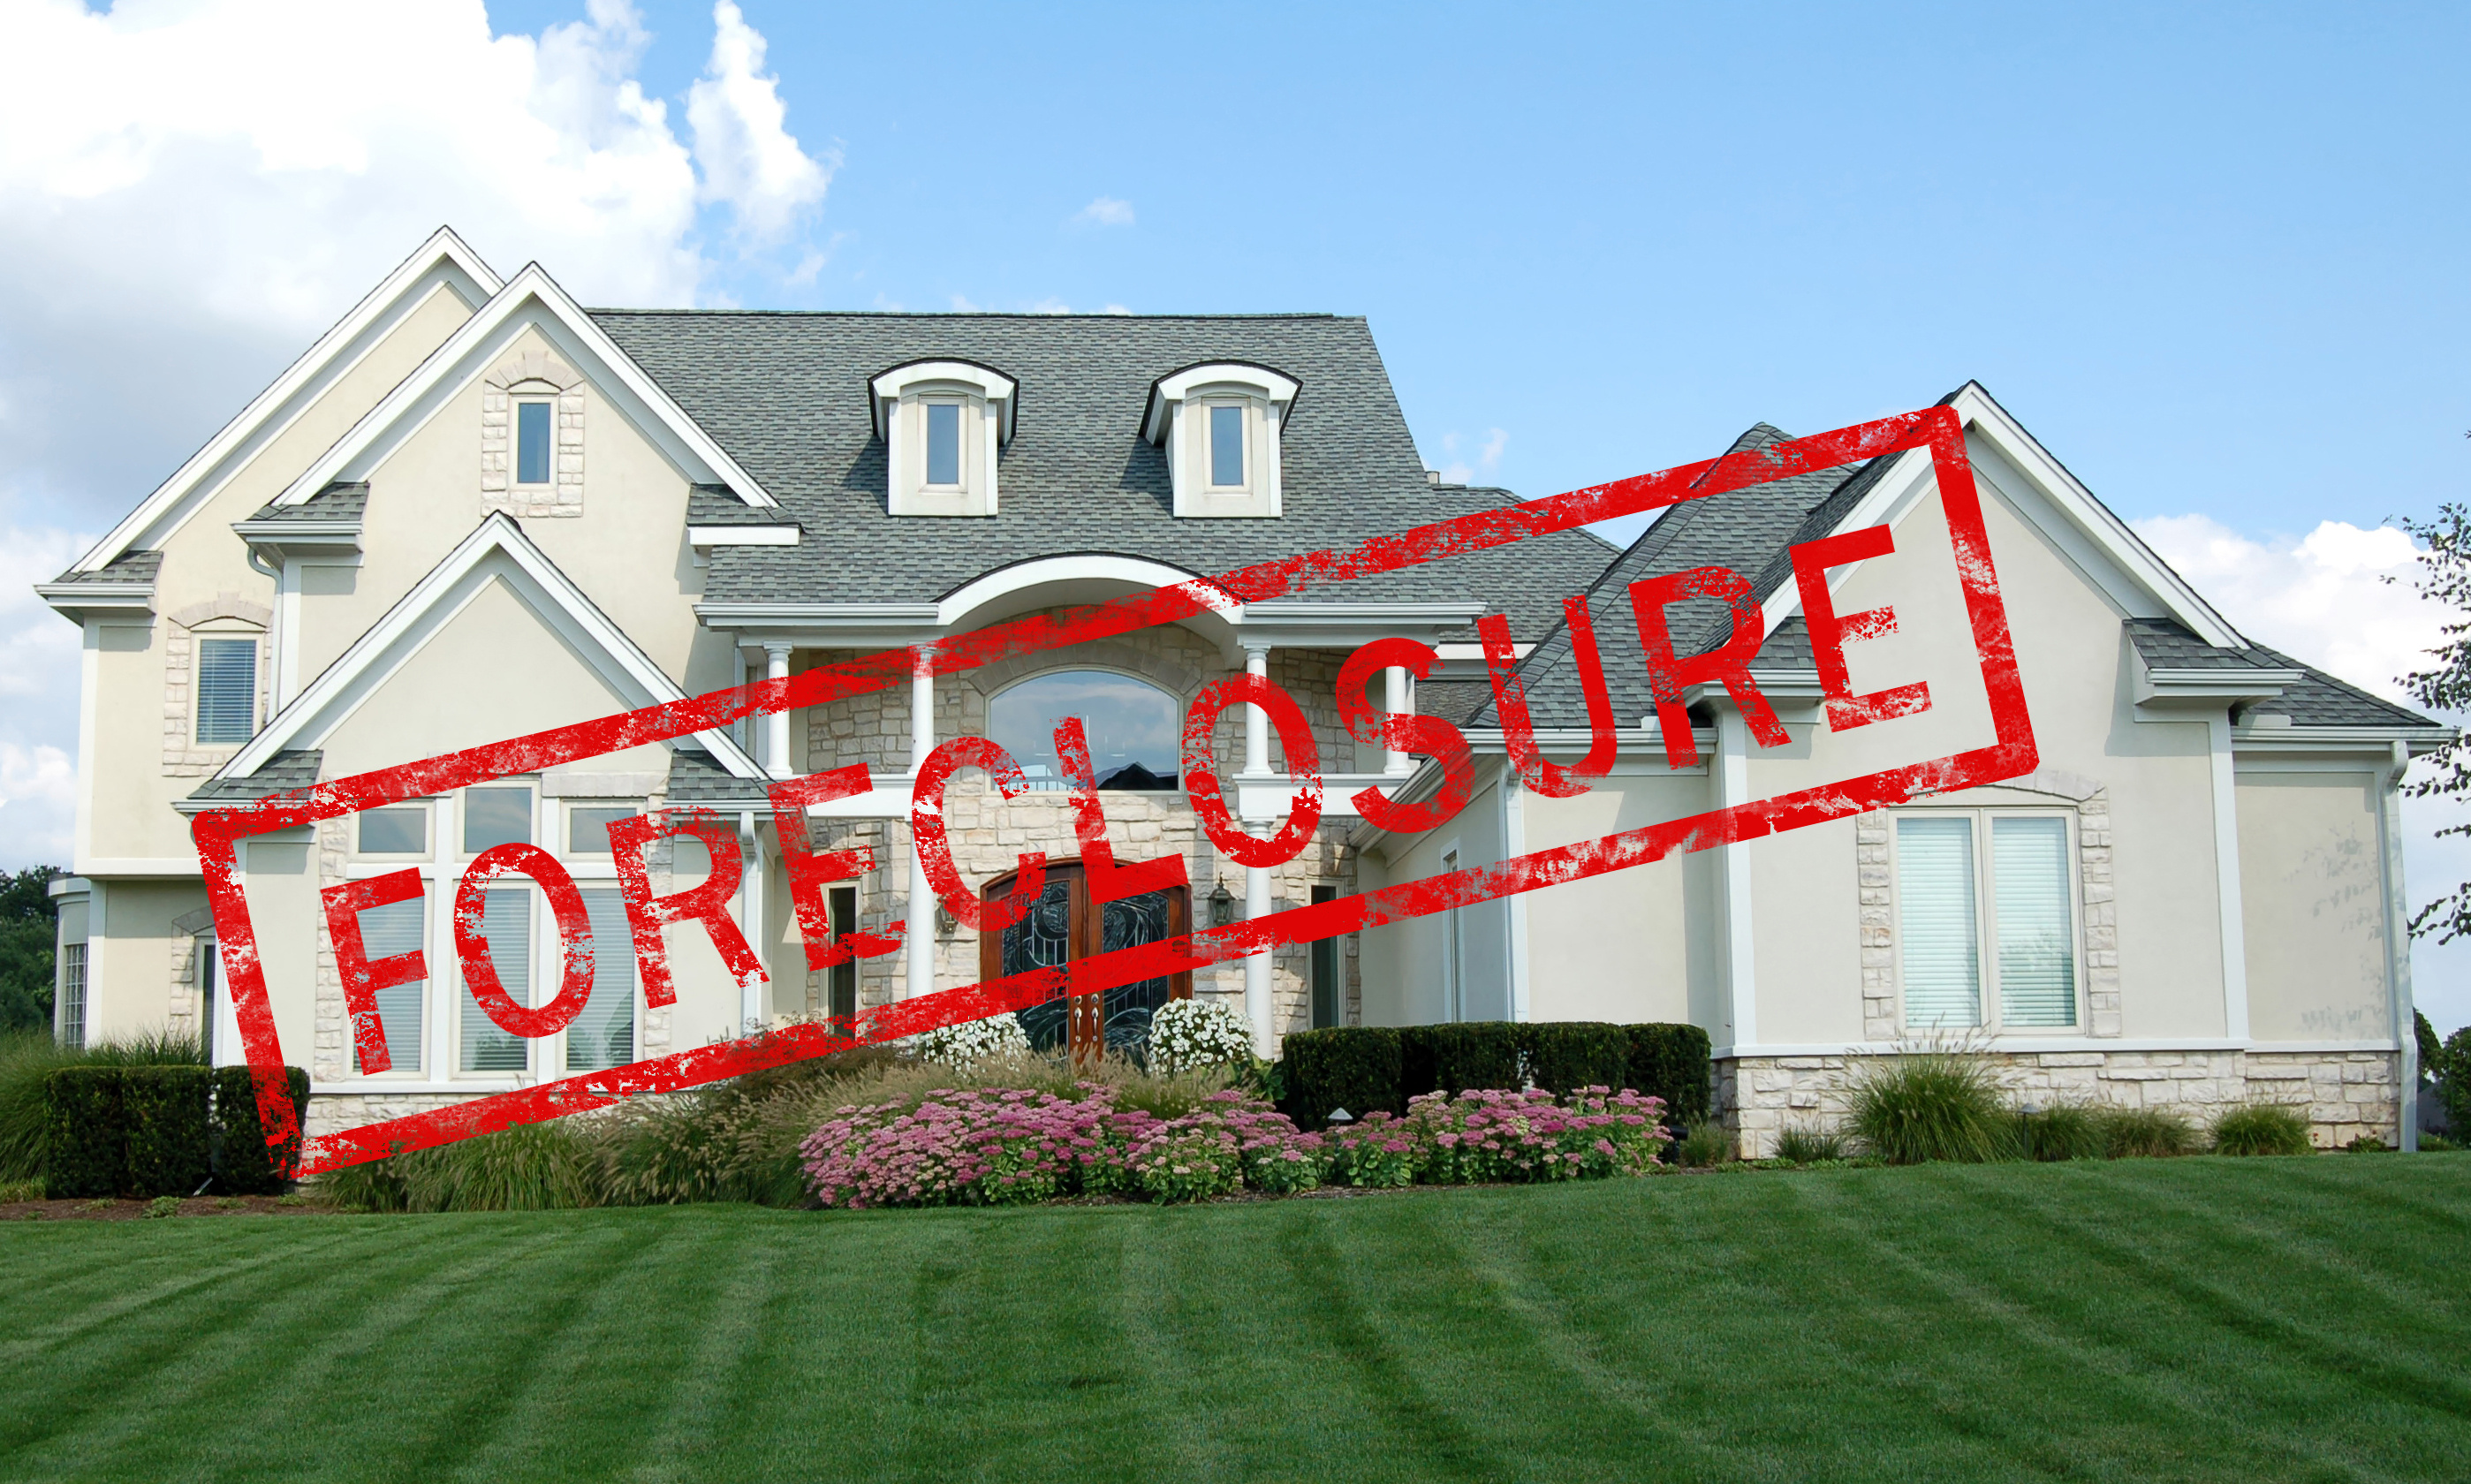 Call Elite Appraisal Services to discuss valuations on Brazoria foreclosures